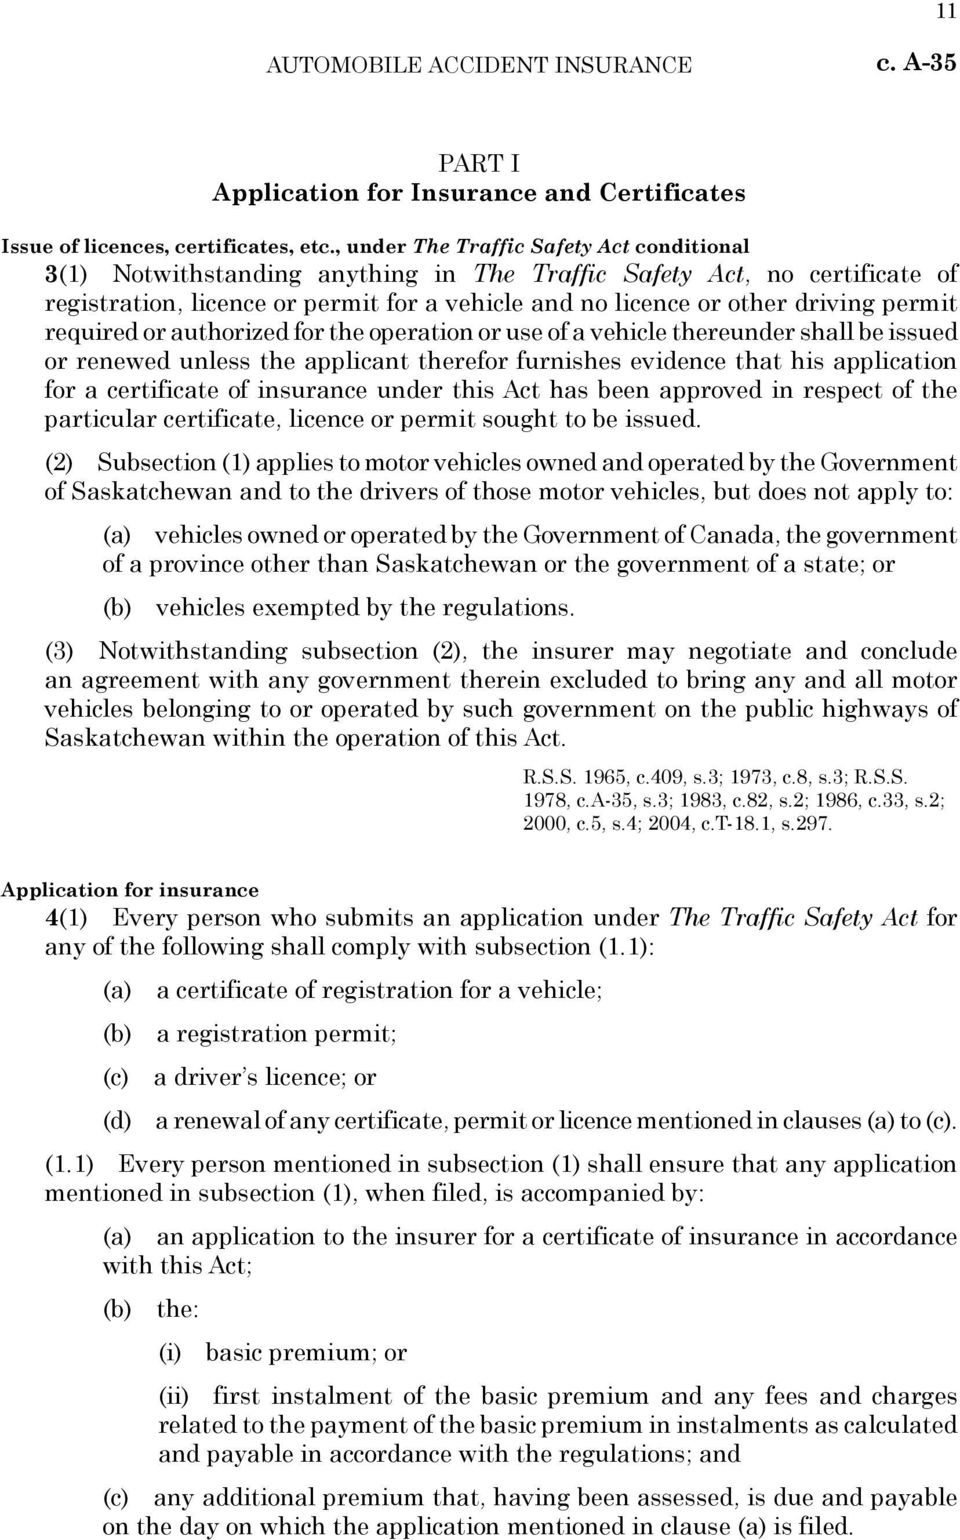 permit required or authorized for the operation or use of a vehicle thereunder shall be issued or renewed unless the applicant therefor furnishes evidence that his application for a certificate of